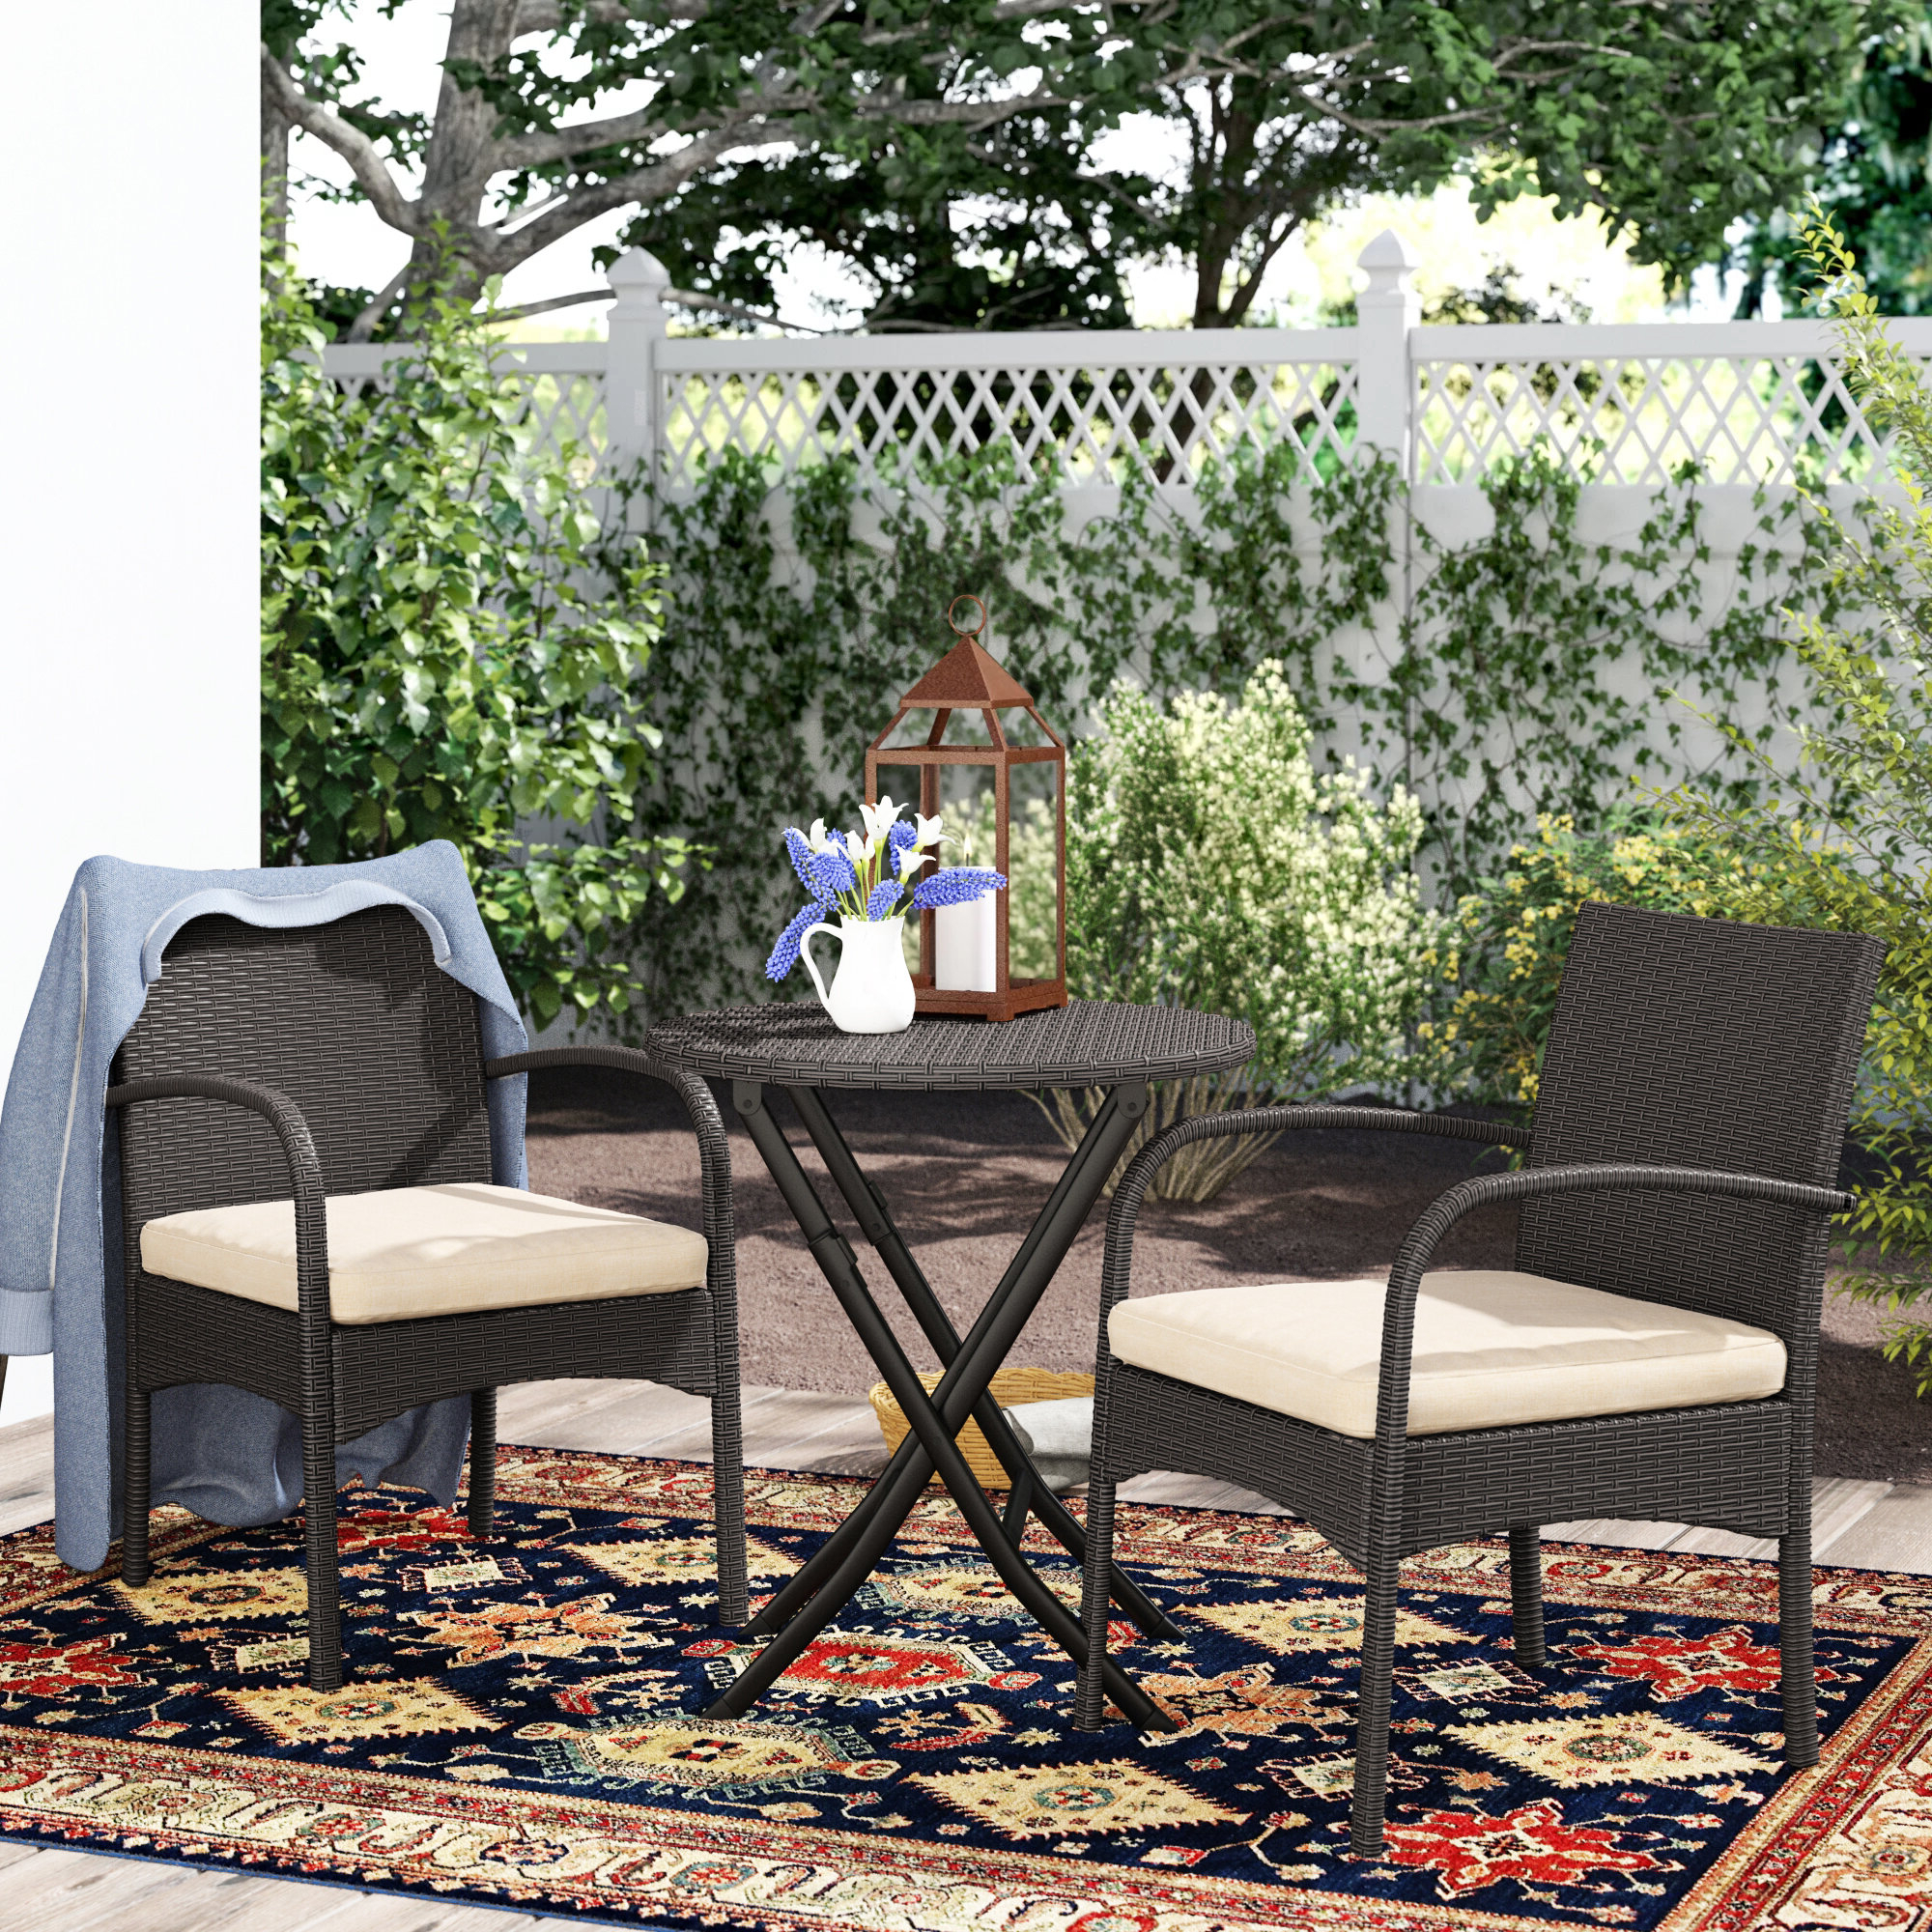 Most Popular Cincinnati 3 Piece Dining Sets Throughout Dereham Outdoor 3 Piece Bistro Set With Cushions (View 19 of 20)